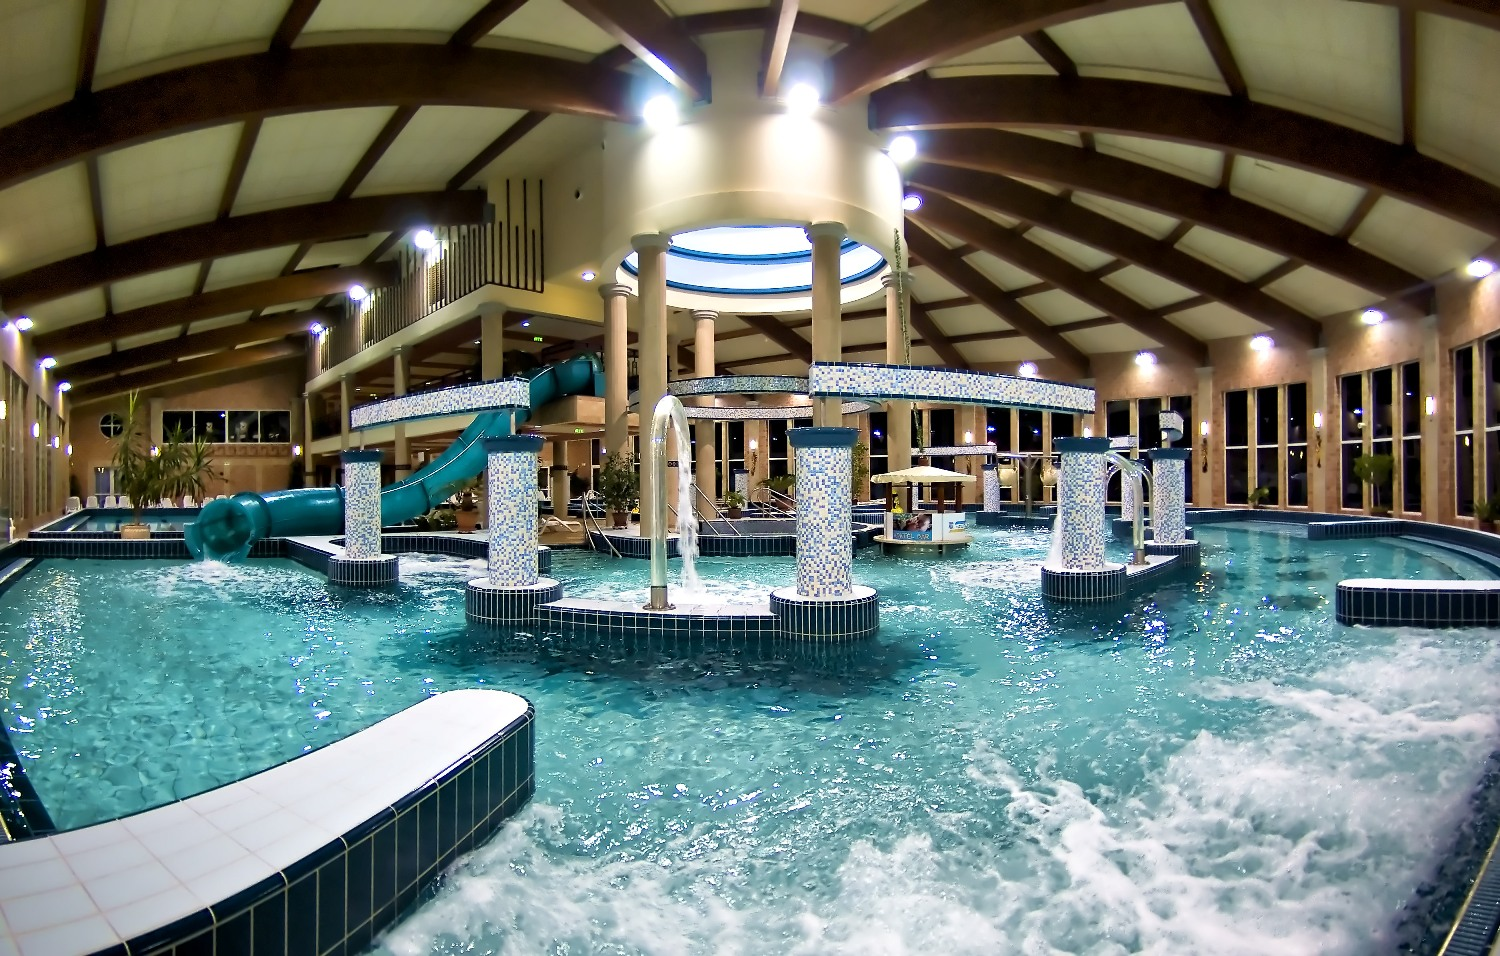 spa and wellness tourism Spa and wellness tourist destinations in northern greece and thessaloniki like pozar, will offer you a trully relaxing, healthy experience that you'll love.